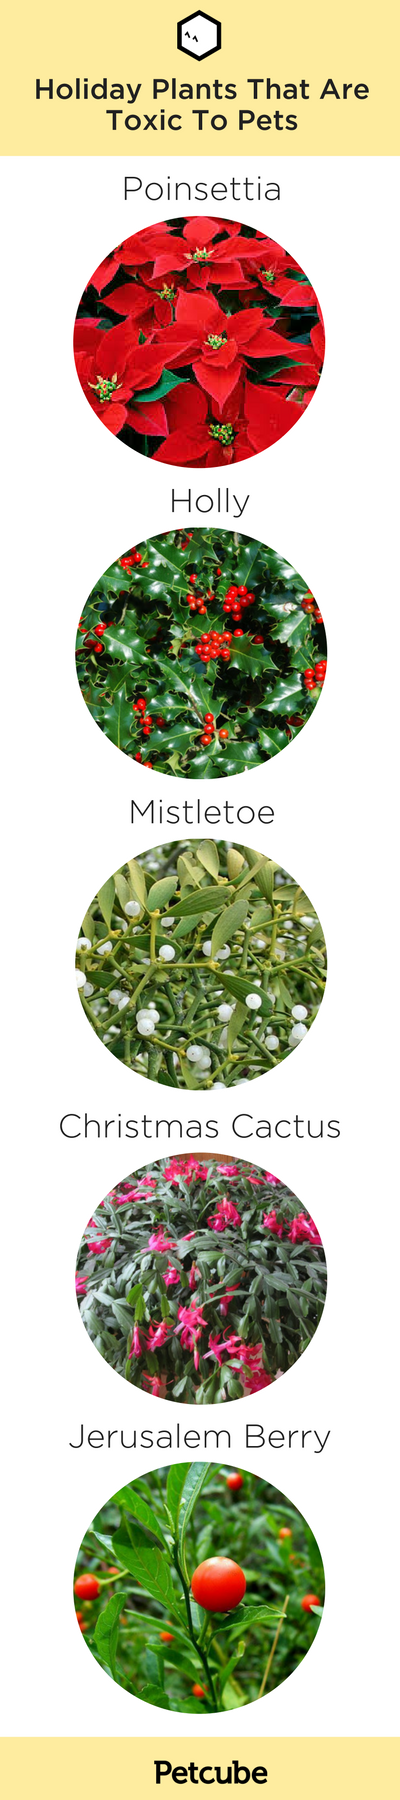 Infographic showing holiday plants that are toxic to pets